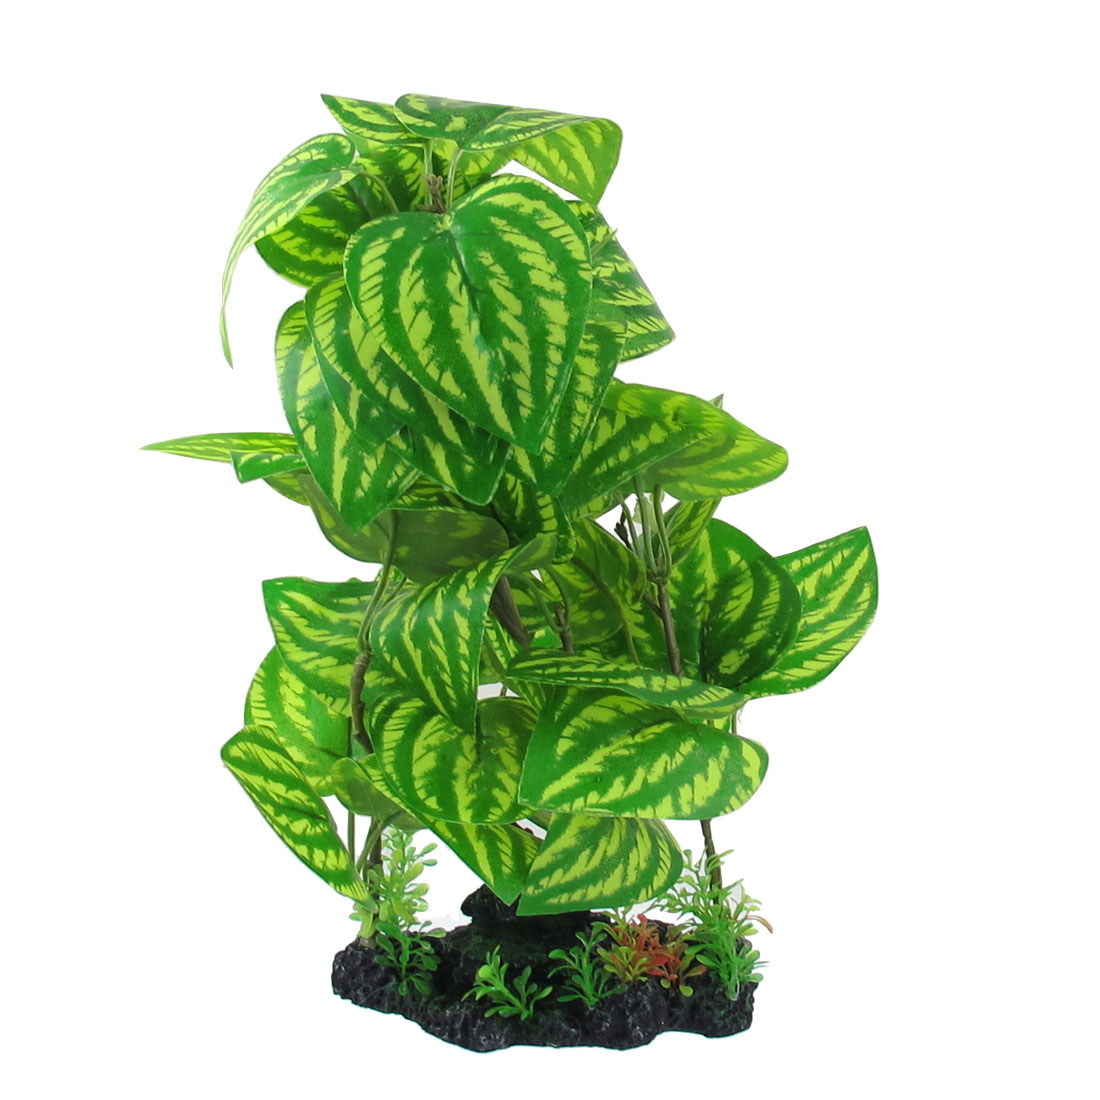 "12.6"" Height Manmade Plastic Green Plant for Aquarium Fish Tank"